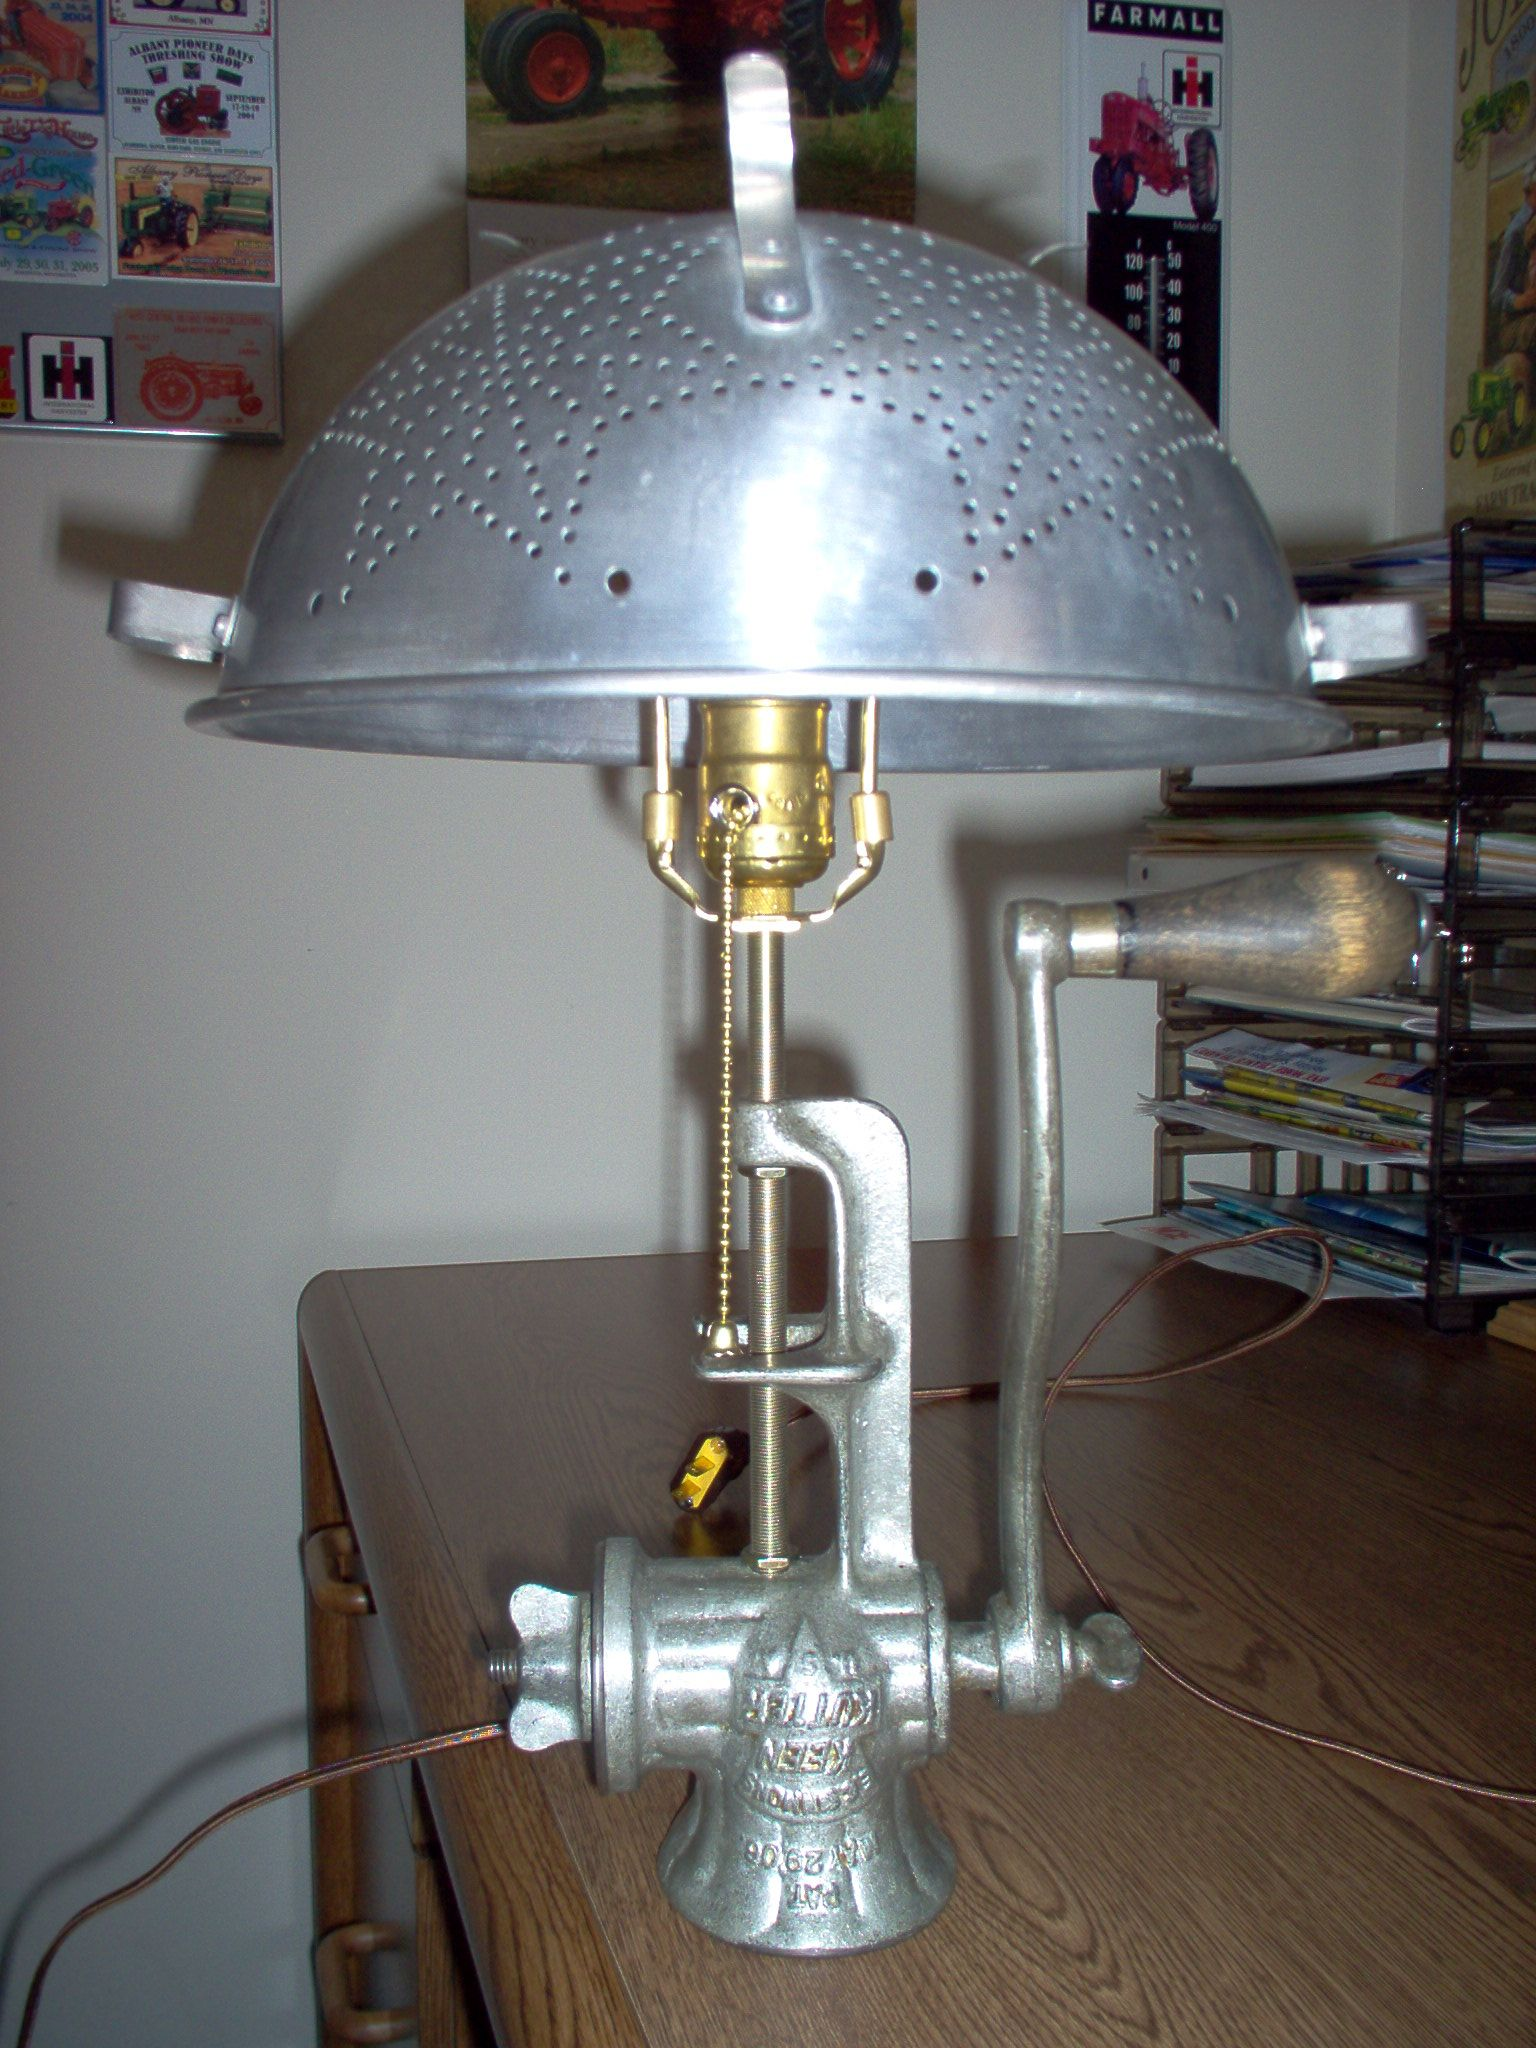 High Quality I Like Making Table Lamps From Vintage Meat Grinders. I Use Old Star  Colanders For